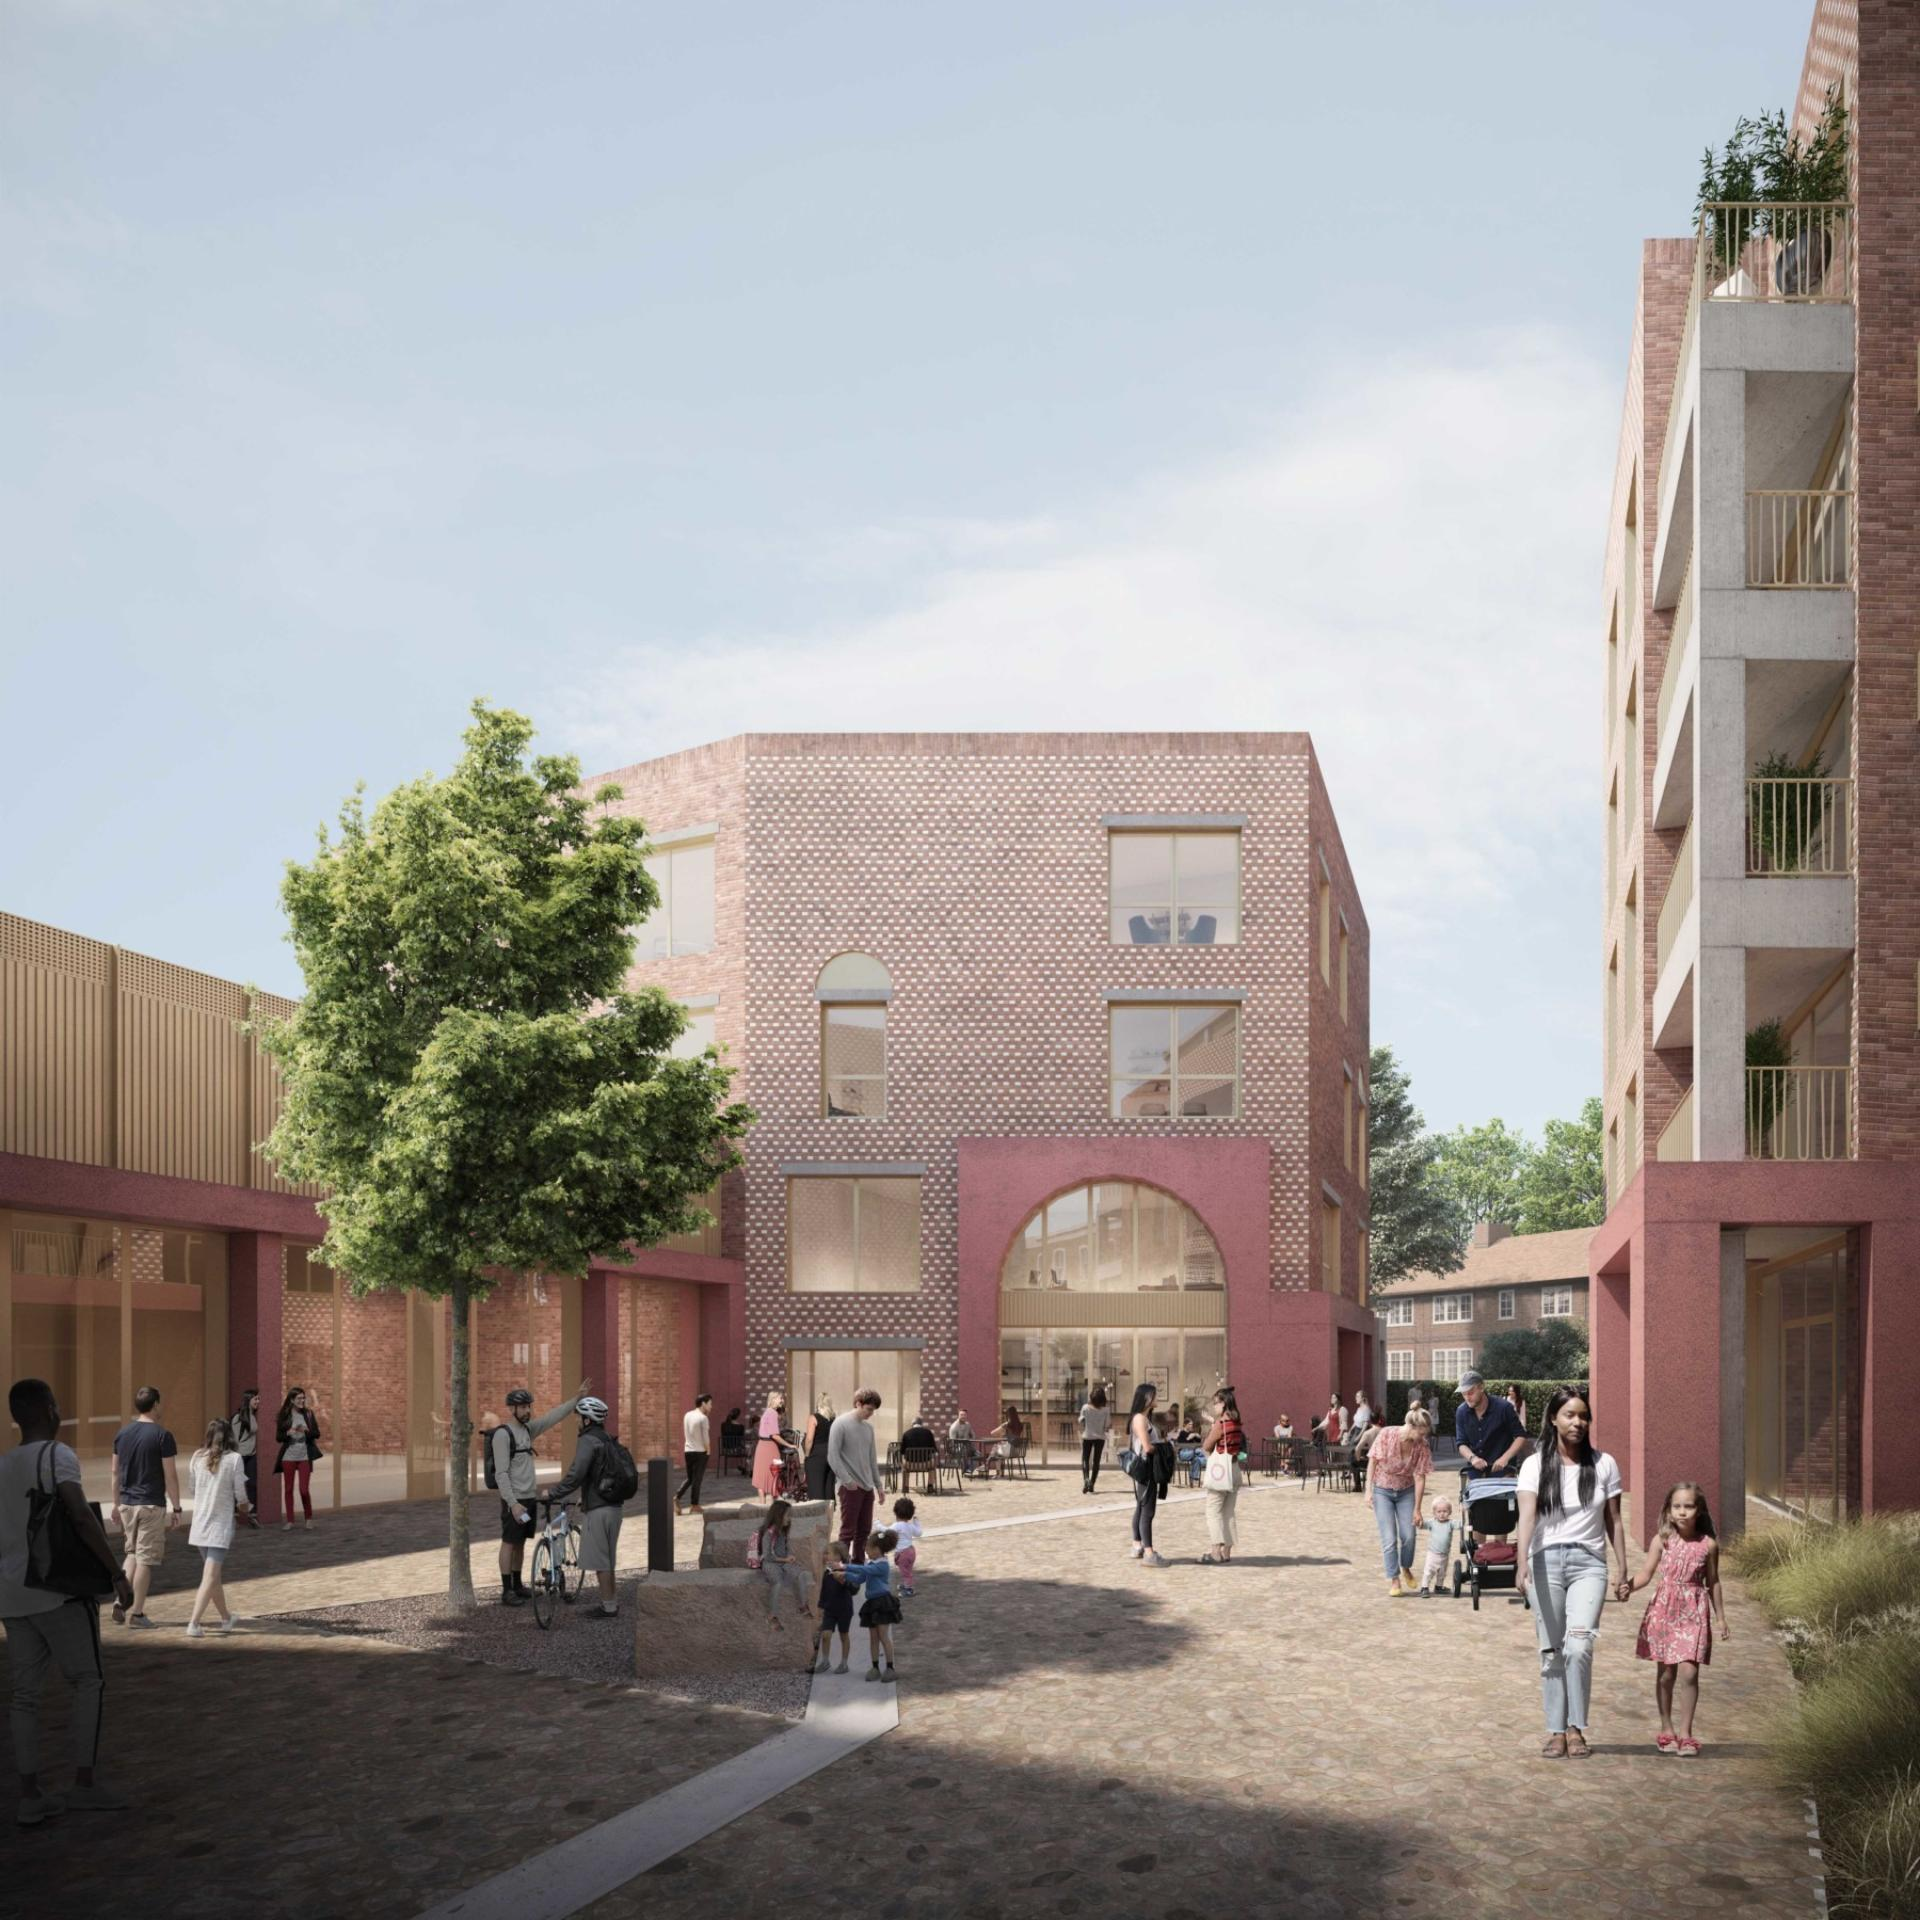 ​The London Borough of Camden's HNCC scheme